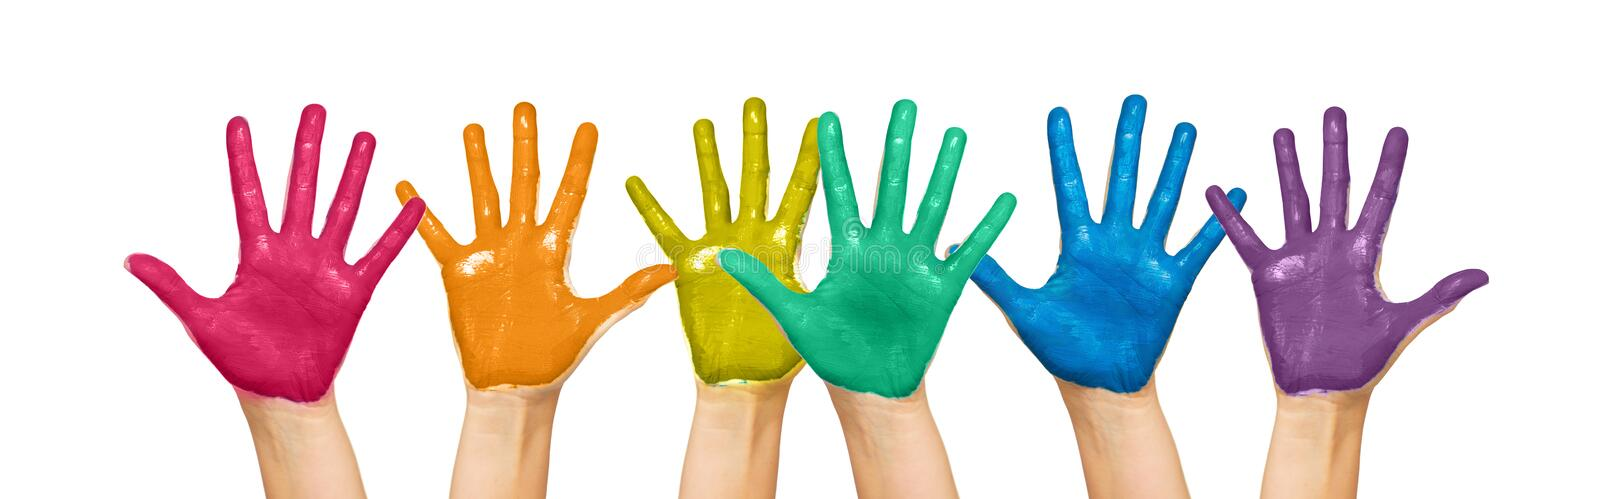 Palms of human hands painted in rainbow colors. People, gay pride, creativity and art concept - palms of human hands painted in rainbow colors royalty free stock photo